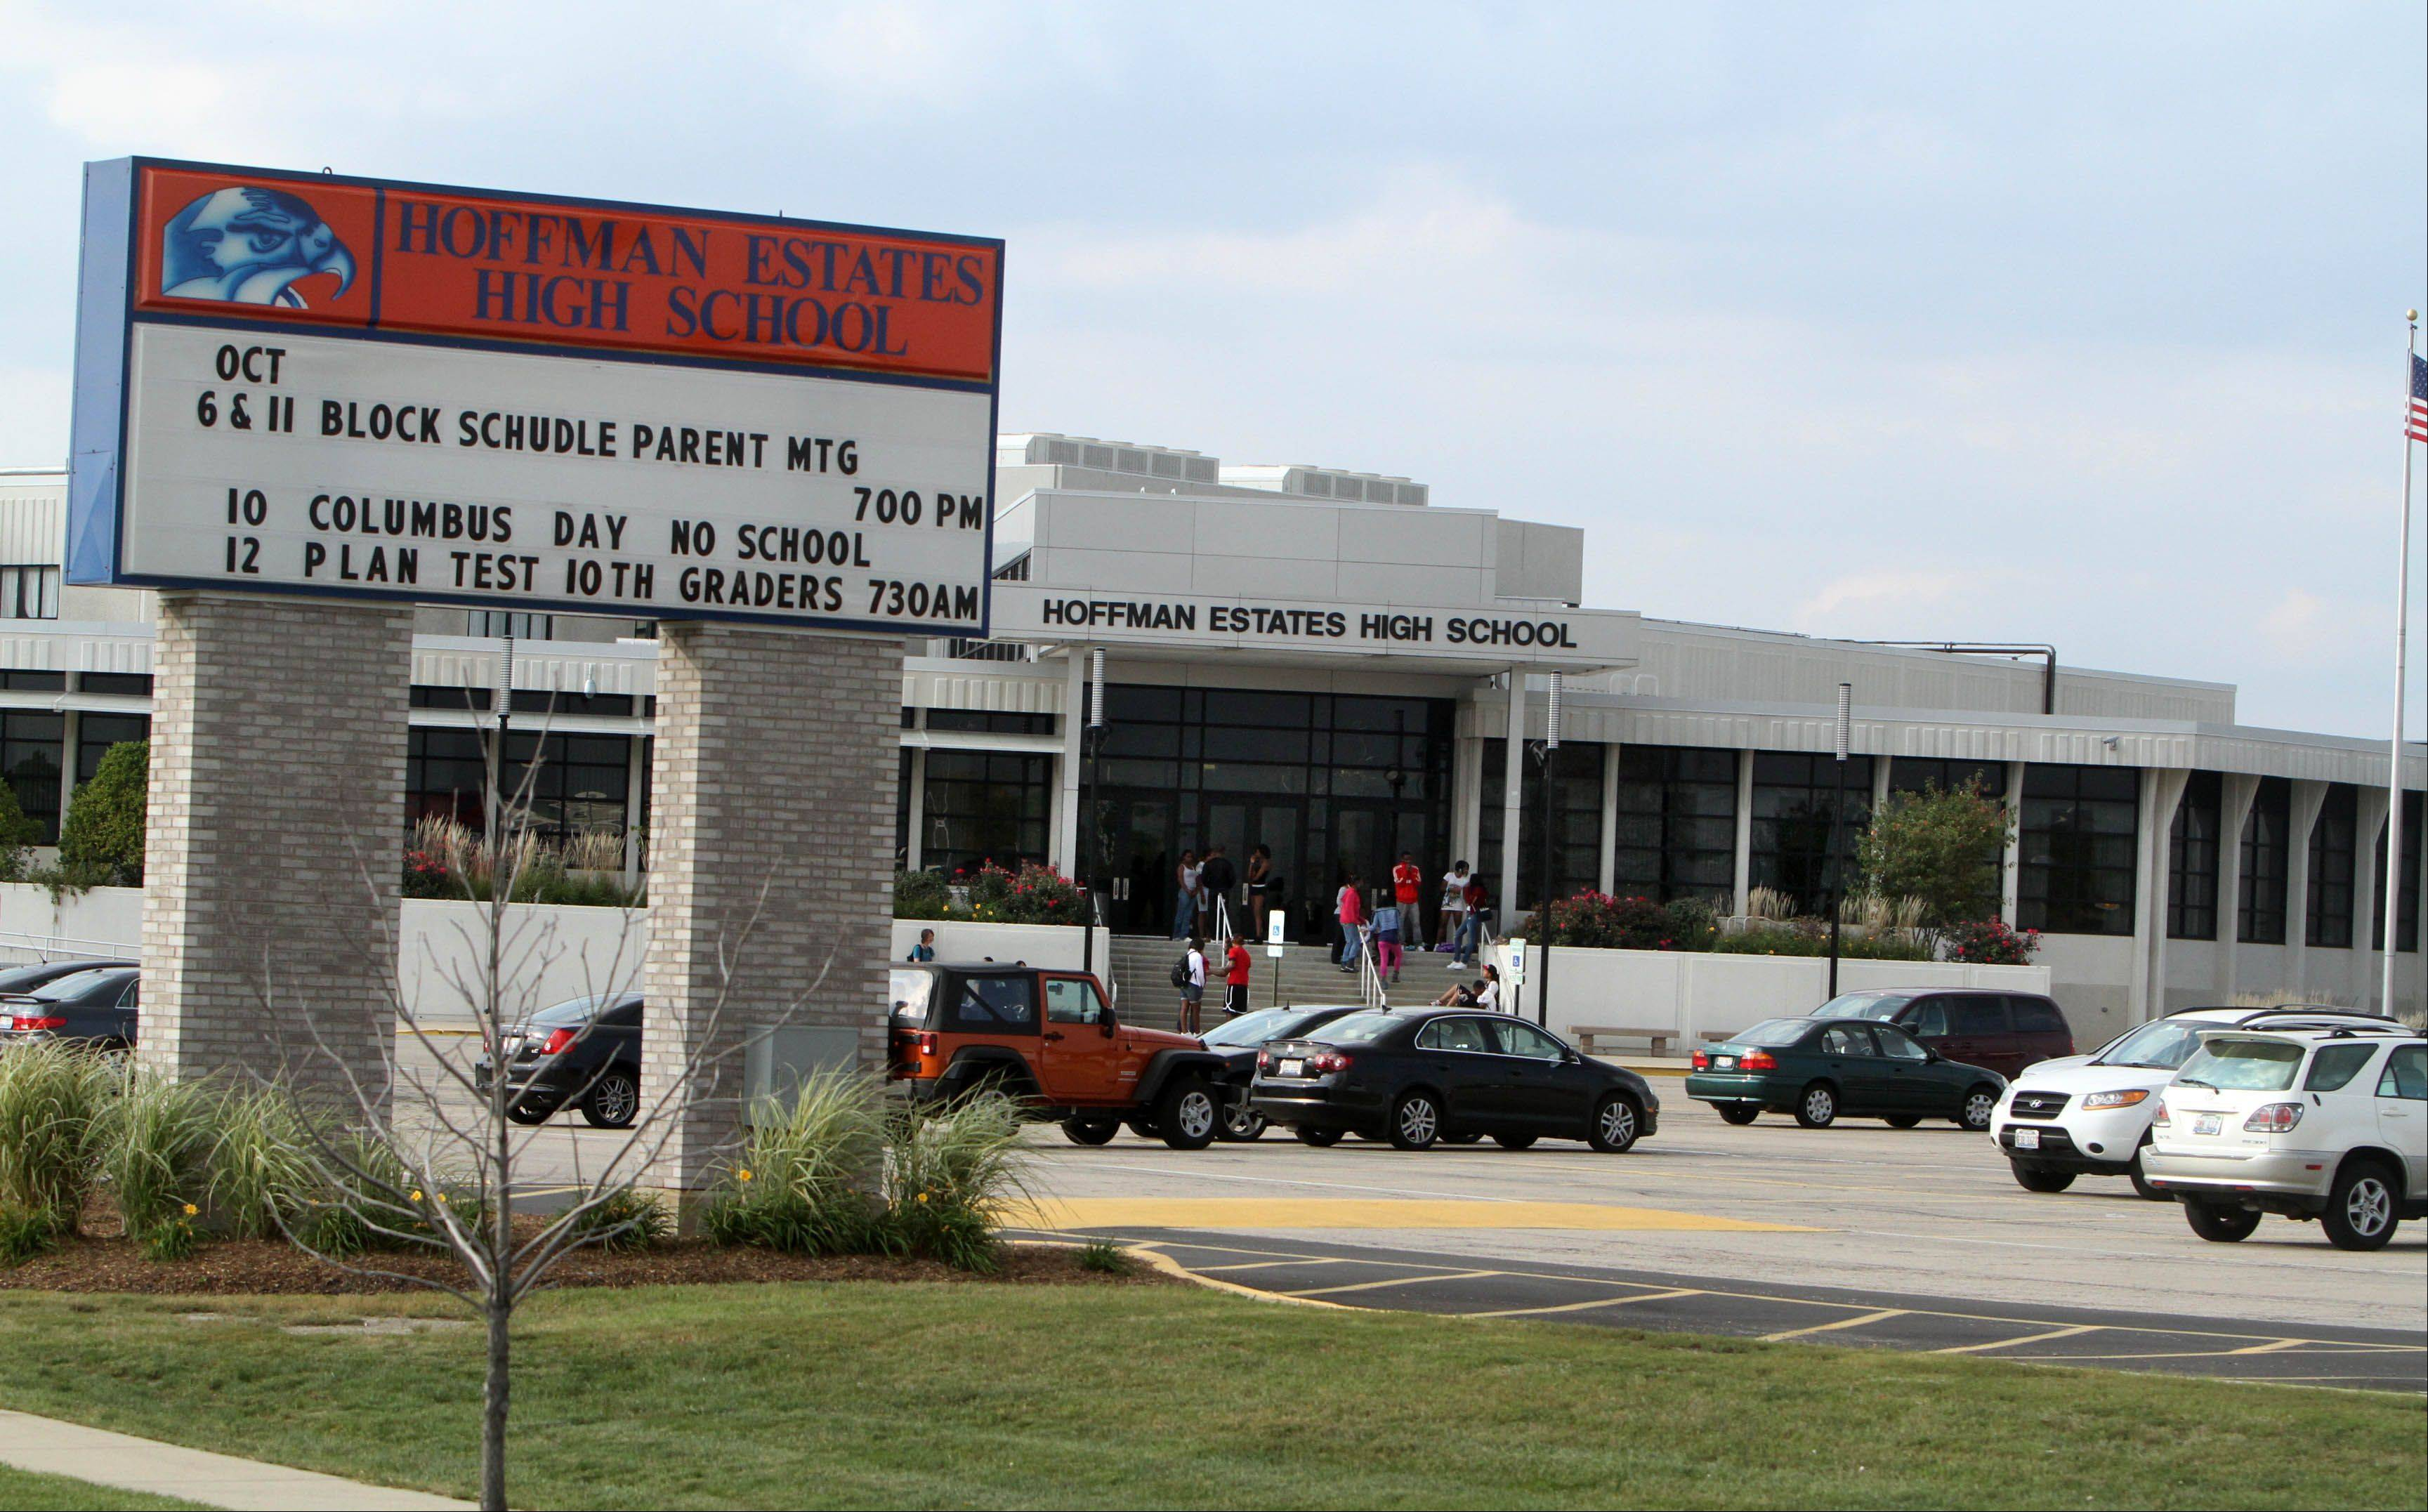 The 14 players on the Hoffman Estates High School basketball team were investigated, and the players and parents met with the District 211 superintendent and Hoffman High principal over hazing allegations that the district learned about Friday, the district says.